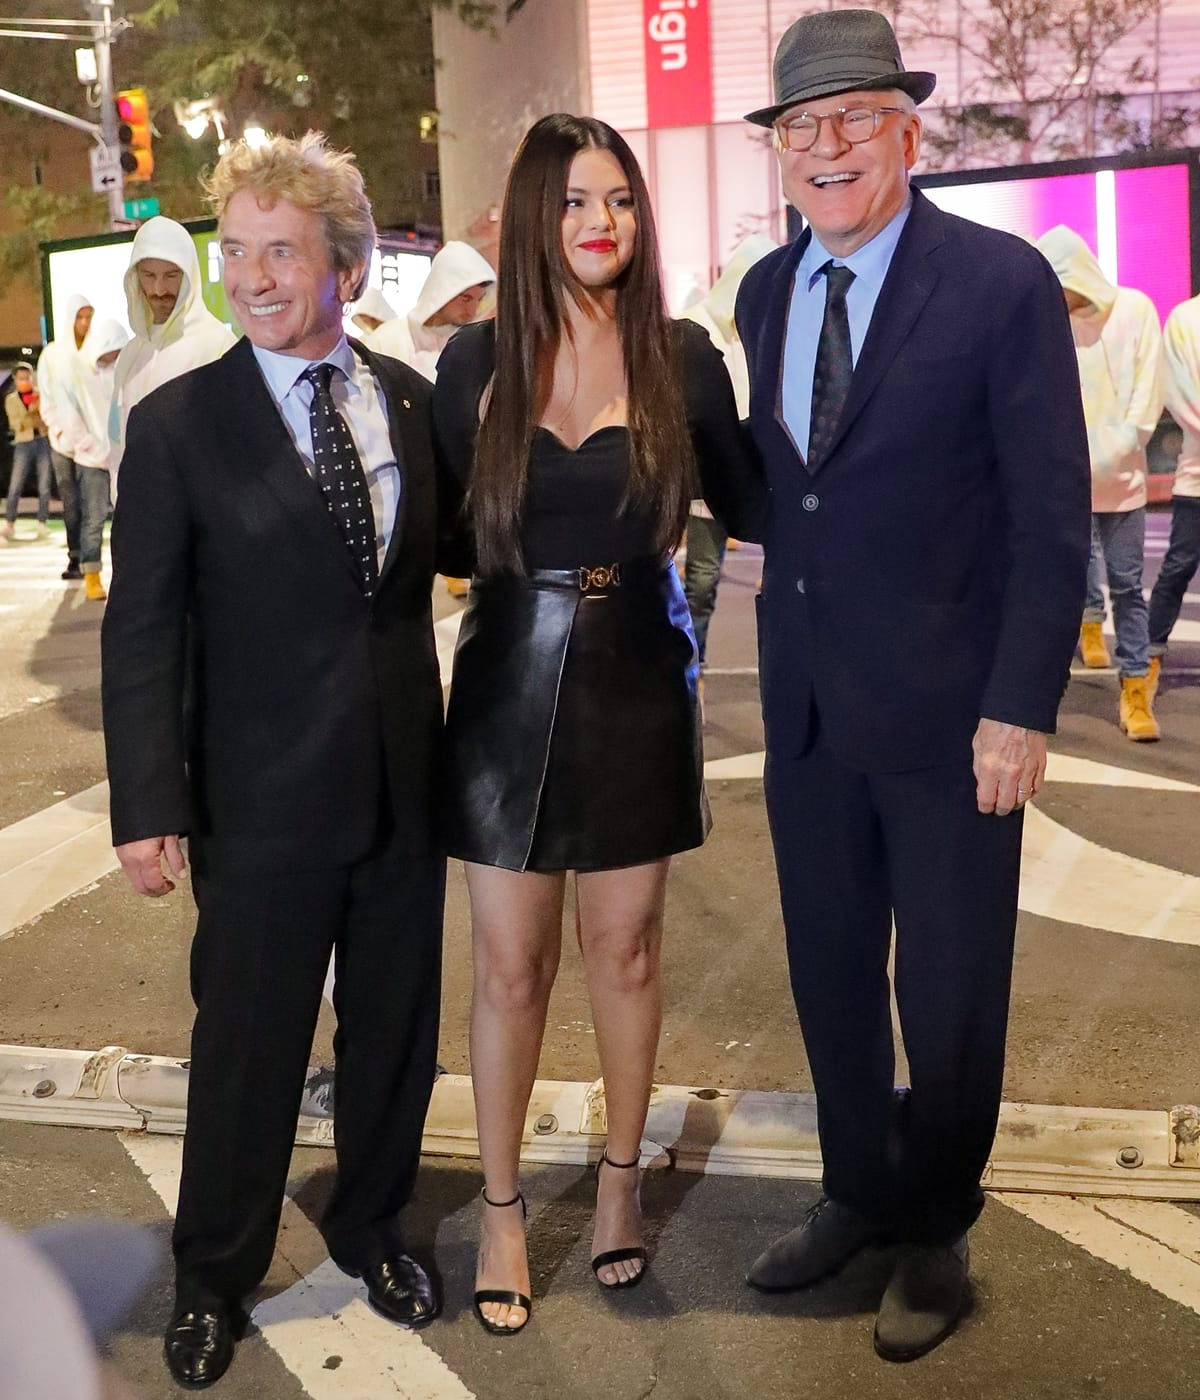 Selena Gomez, Steve Martin, and Martin Short promoting Only Murders in the Building